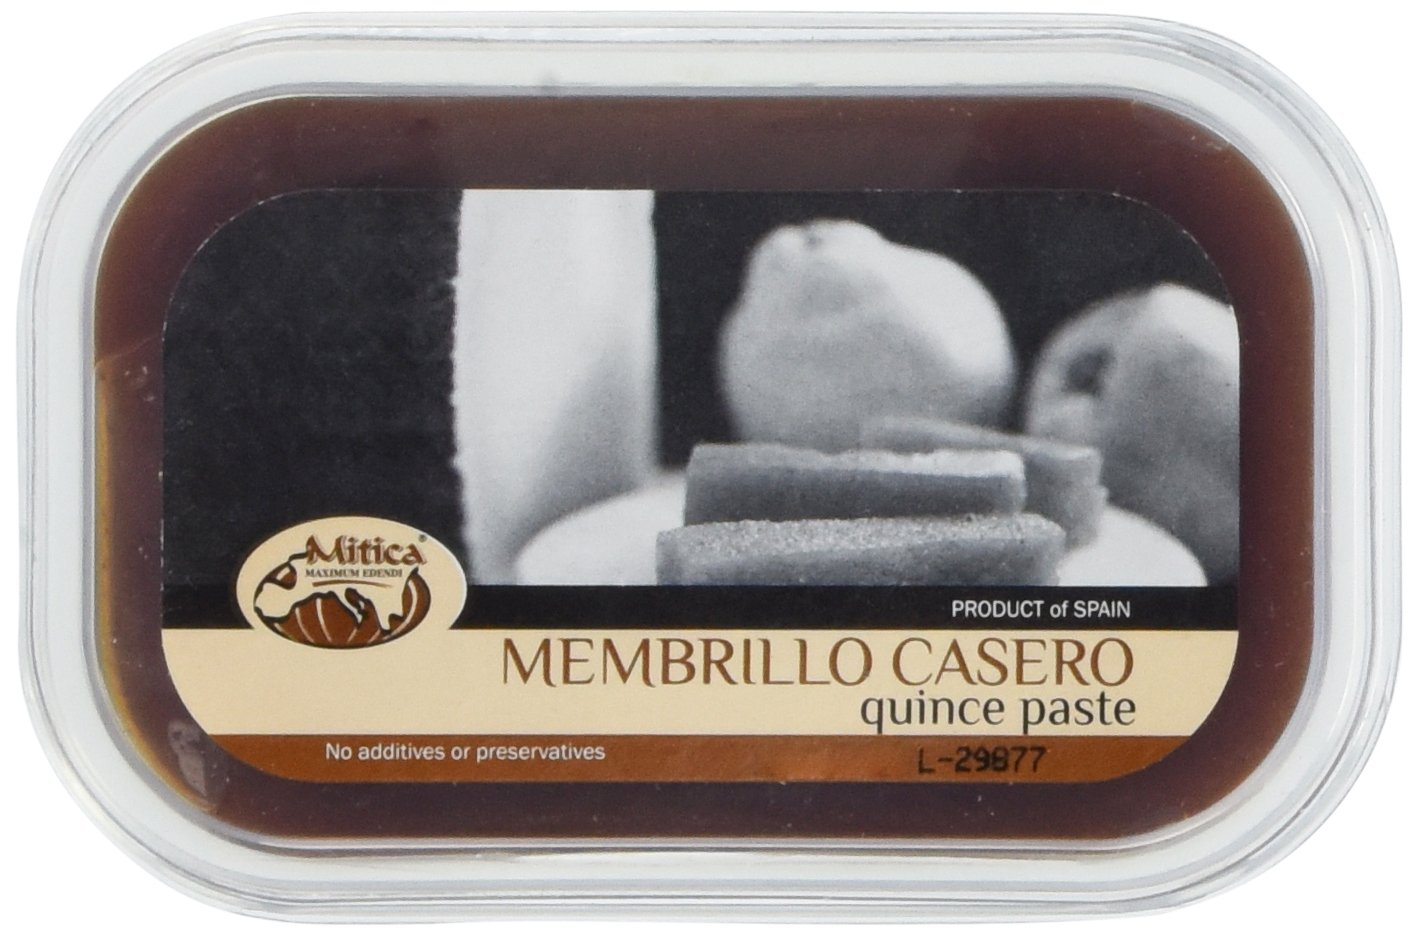 Membrillo - Quince Paste - 1 container, 10 oz 1 Product Size: 1 container - 10 oz From Spain, by Mitica Click the Gourmet Food World name above to see all of our products. We sell: